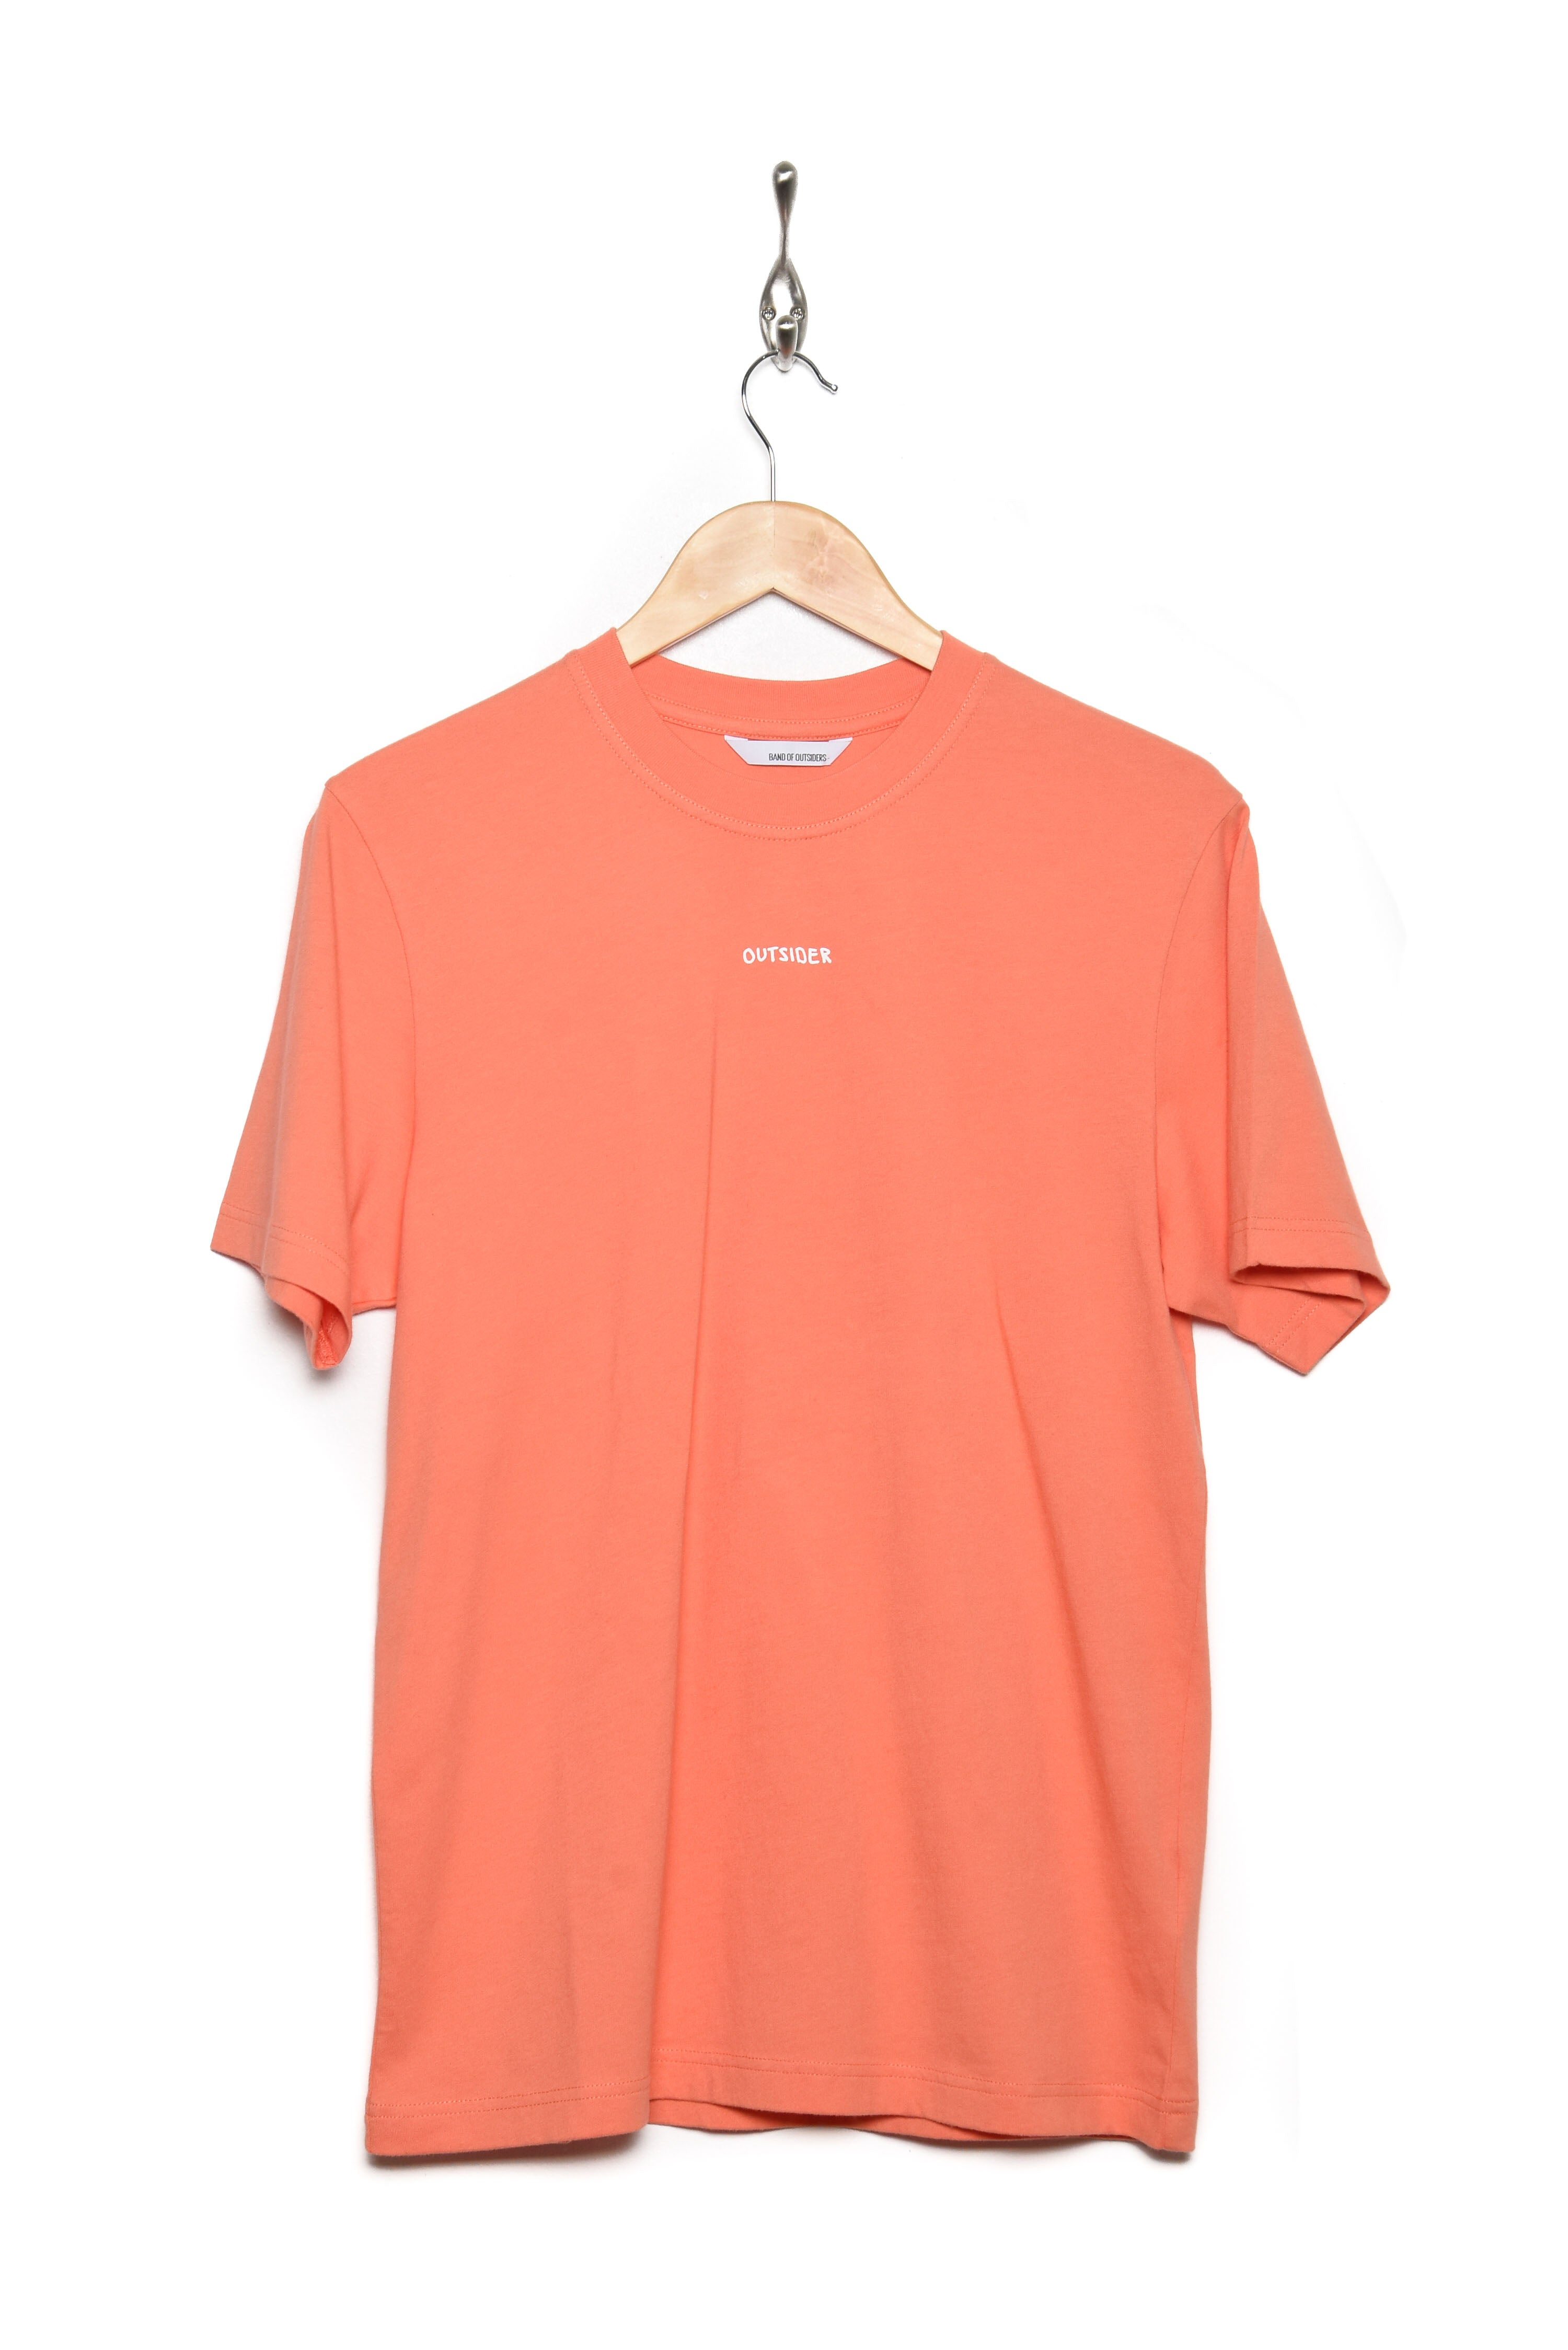 Band Of Outsiders Outsider Tee coral